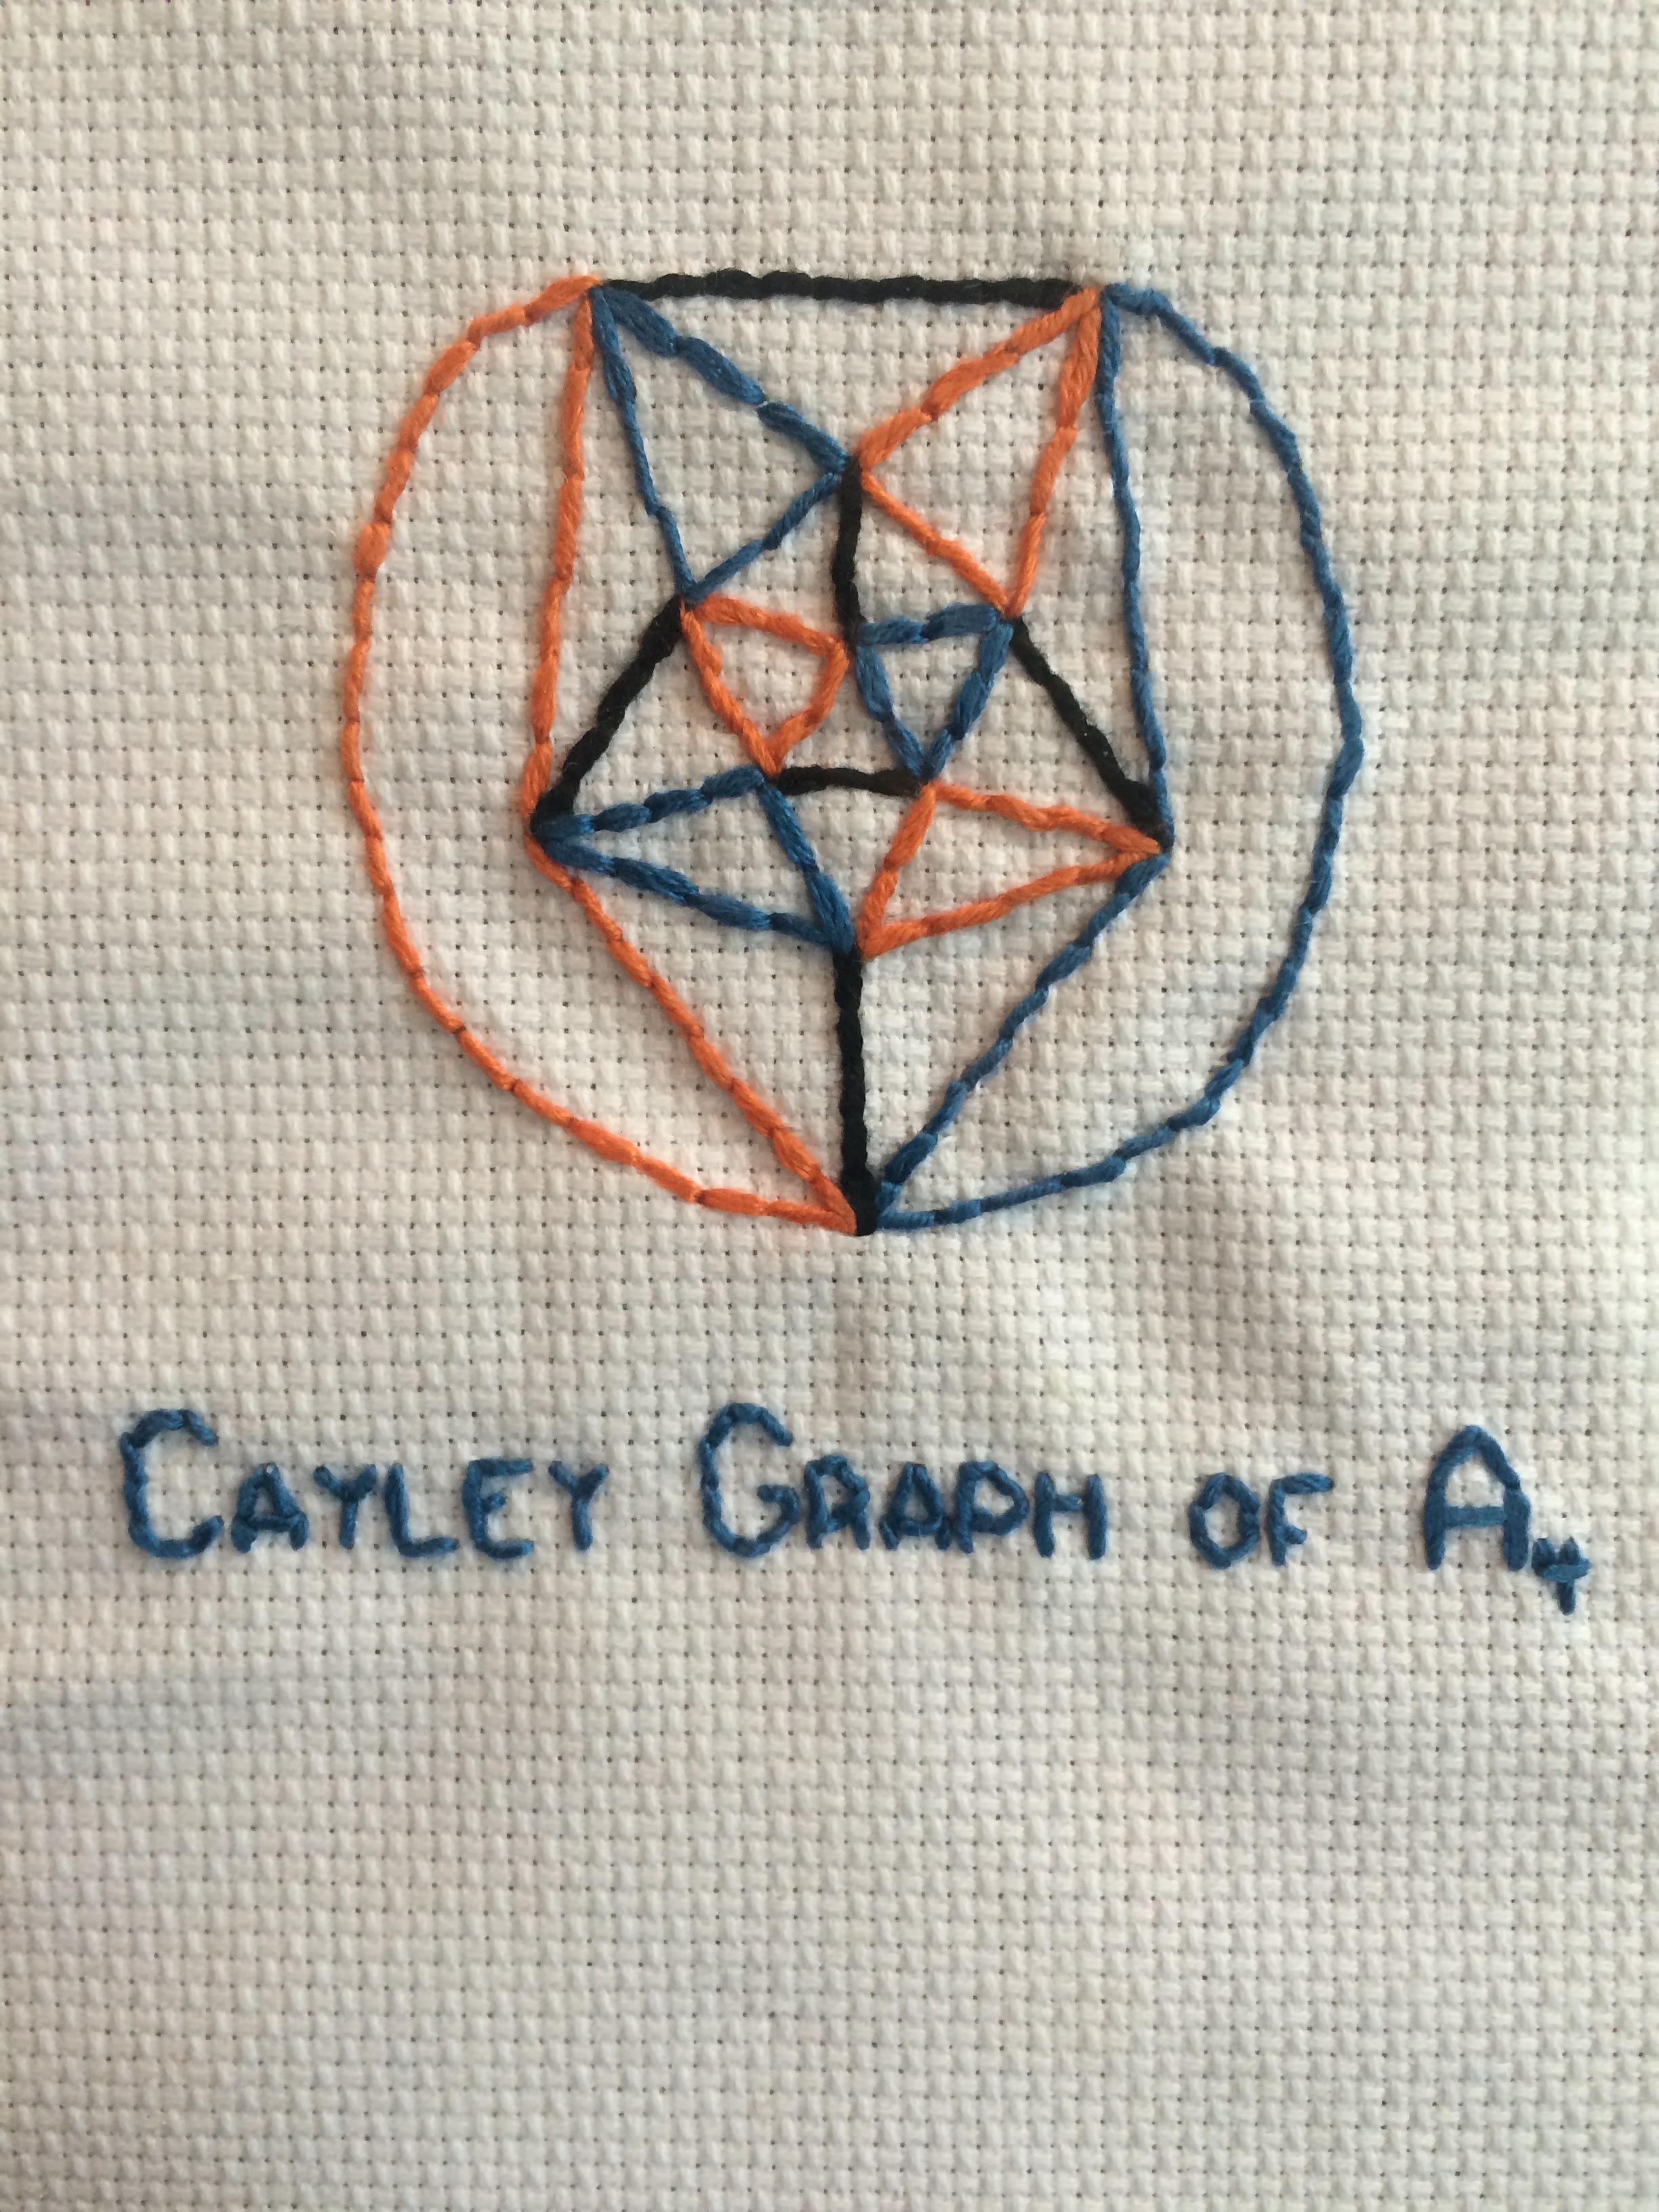 A_4 - Group Theory in Needle Point